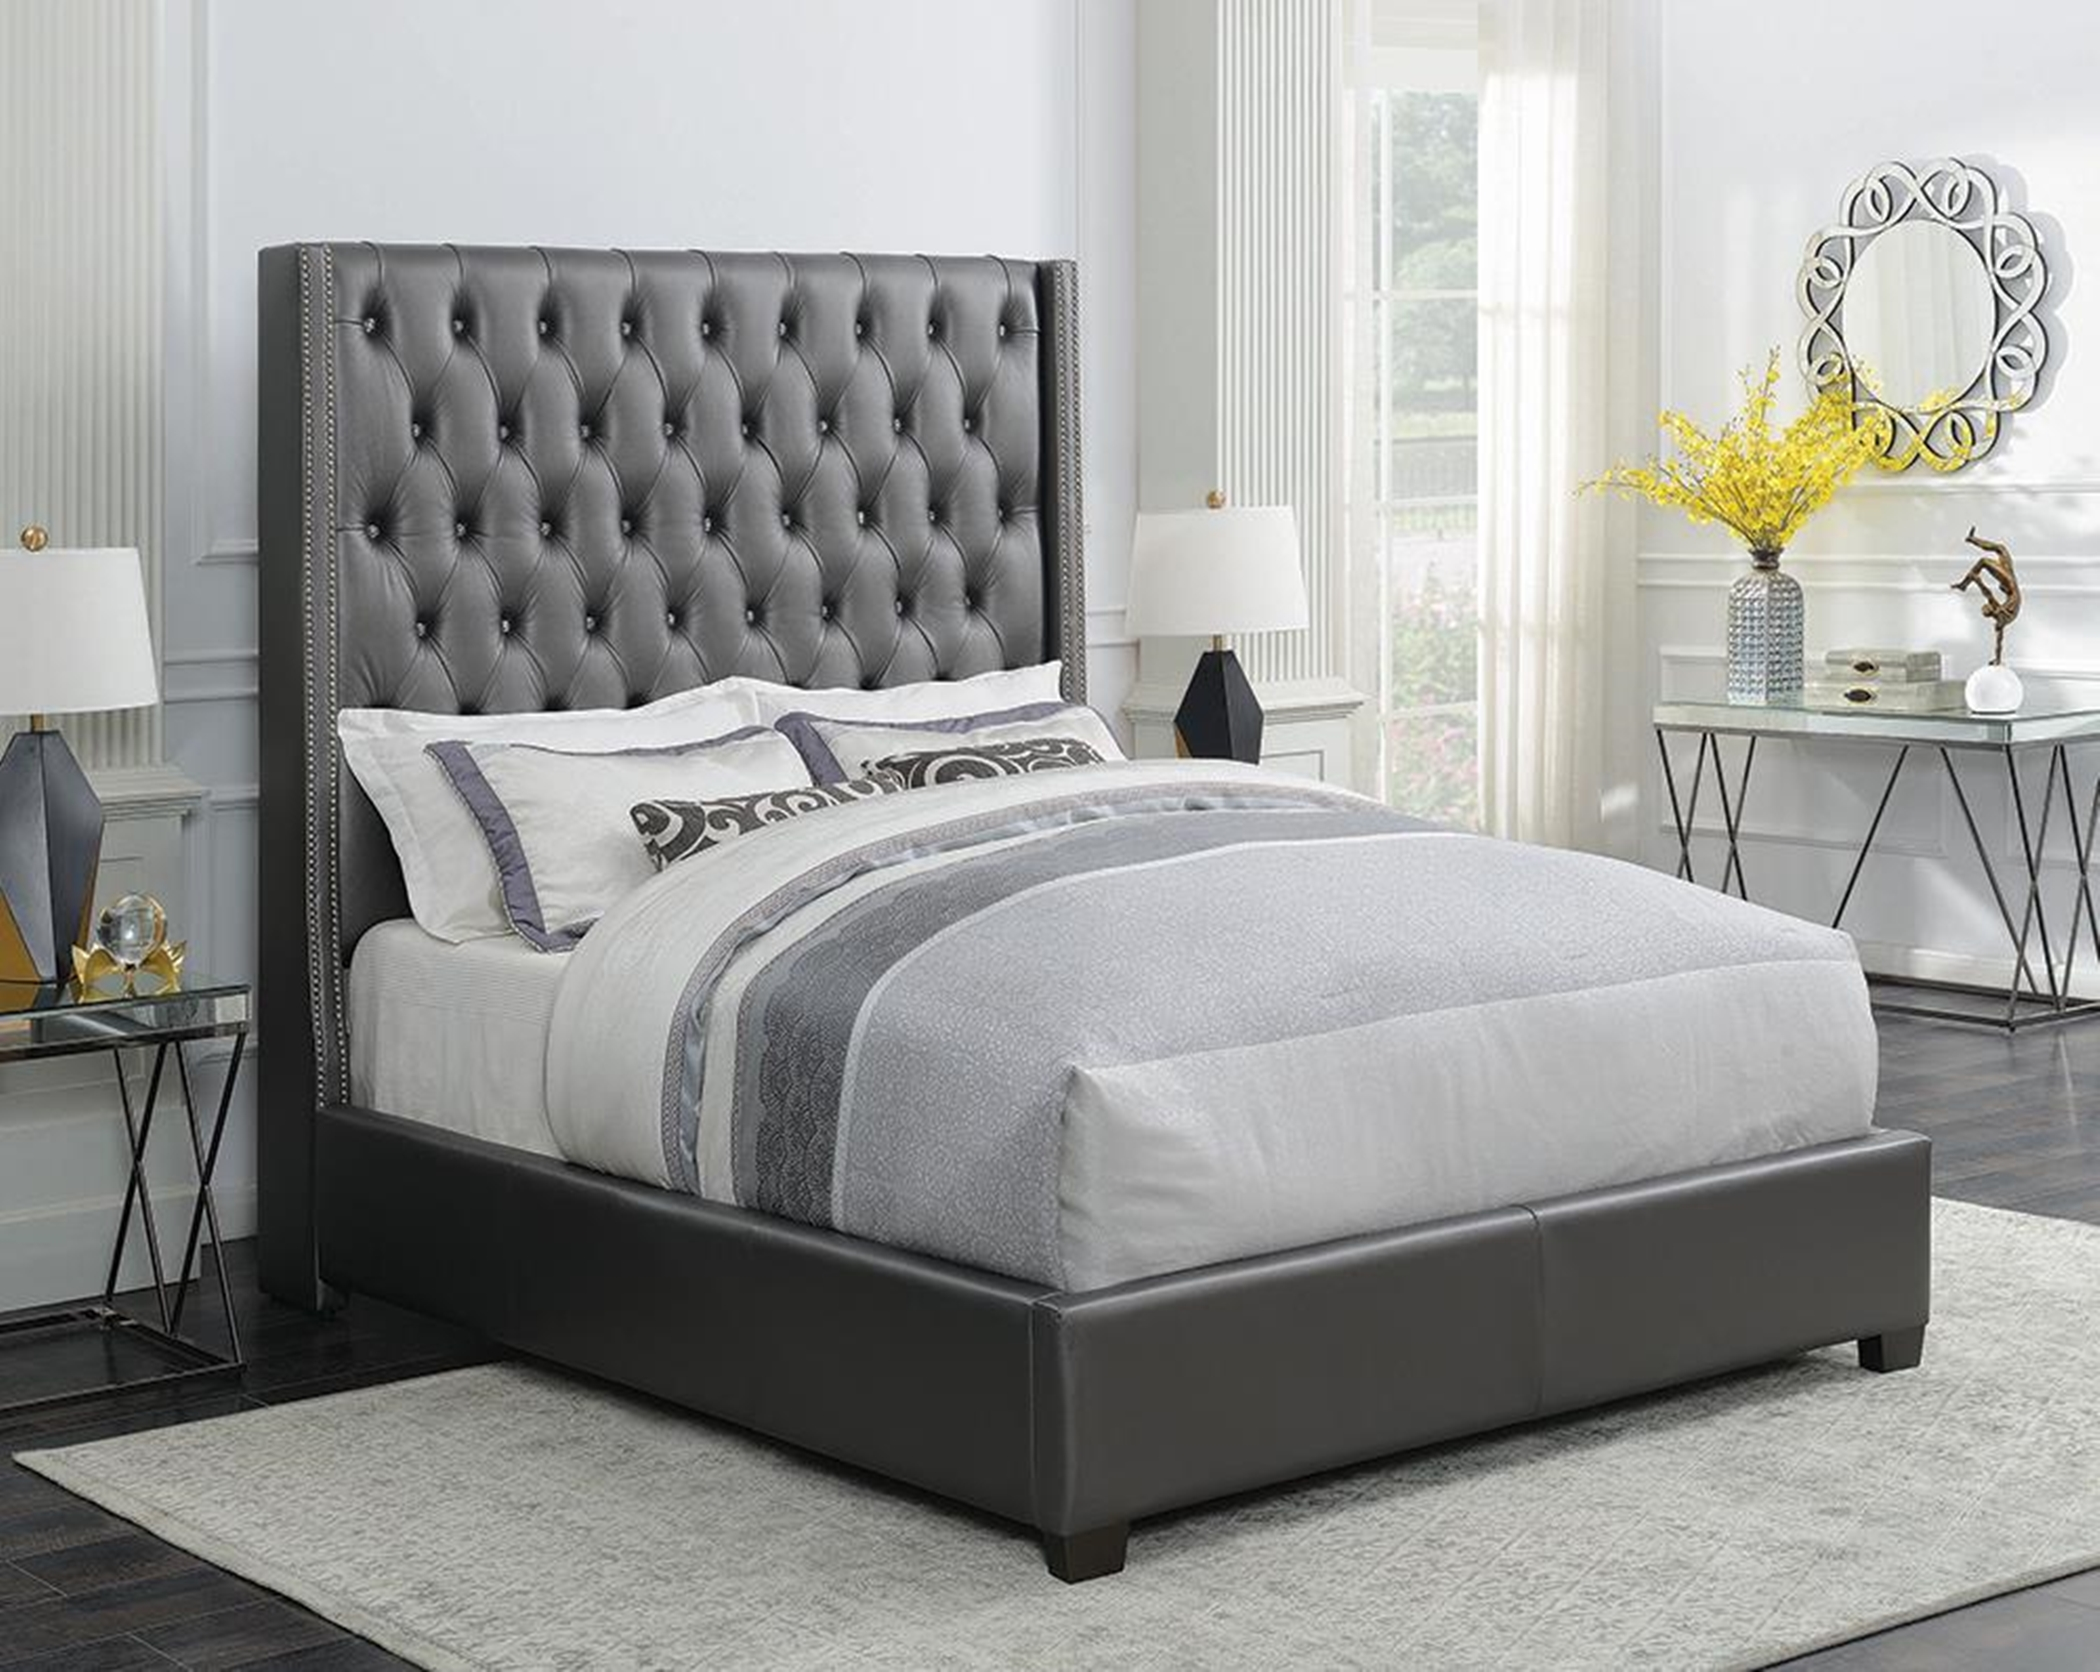 Clifton Metallic Grey Queen Bed